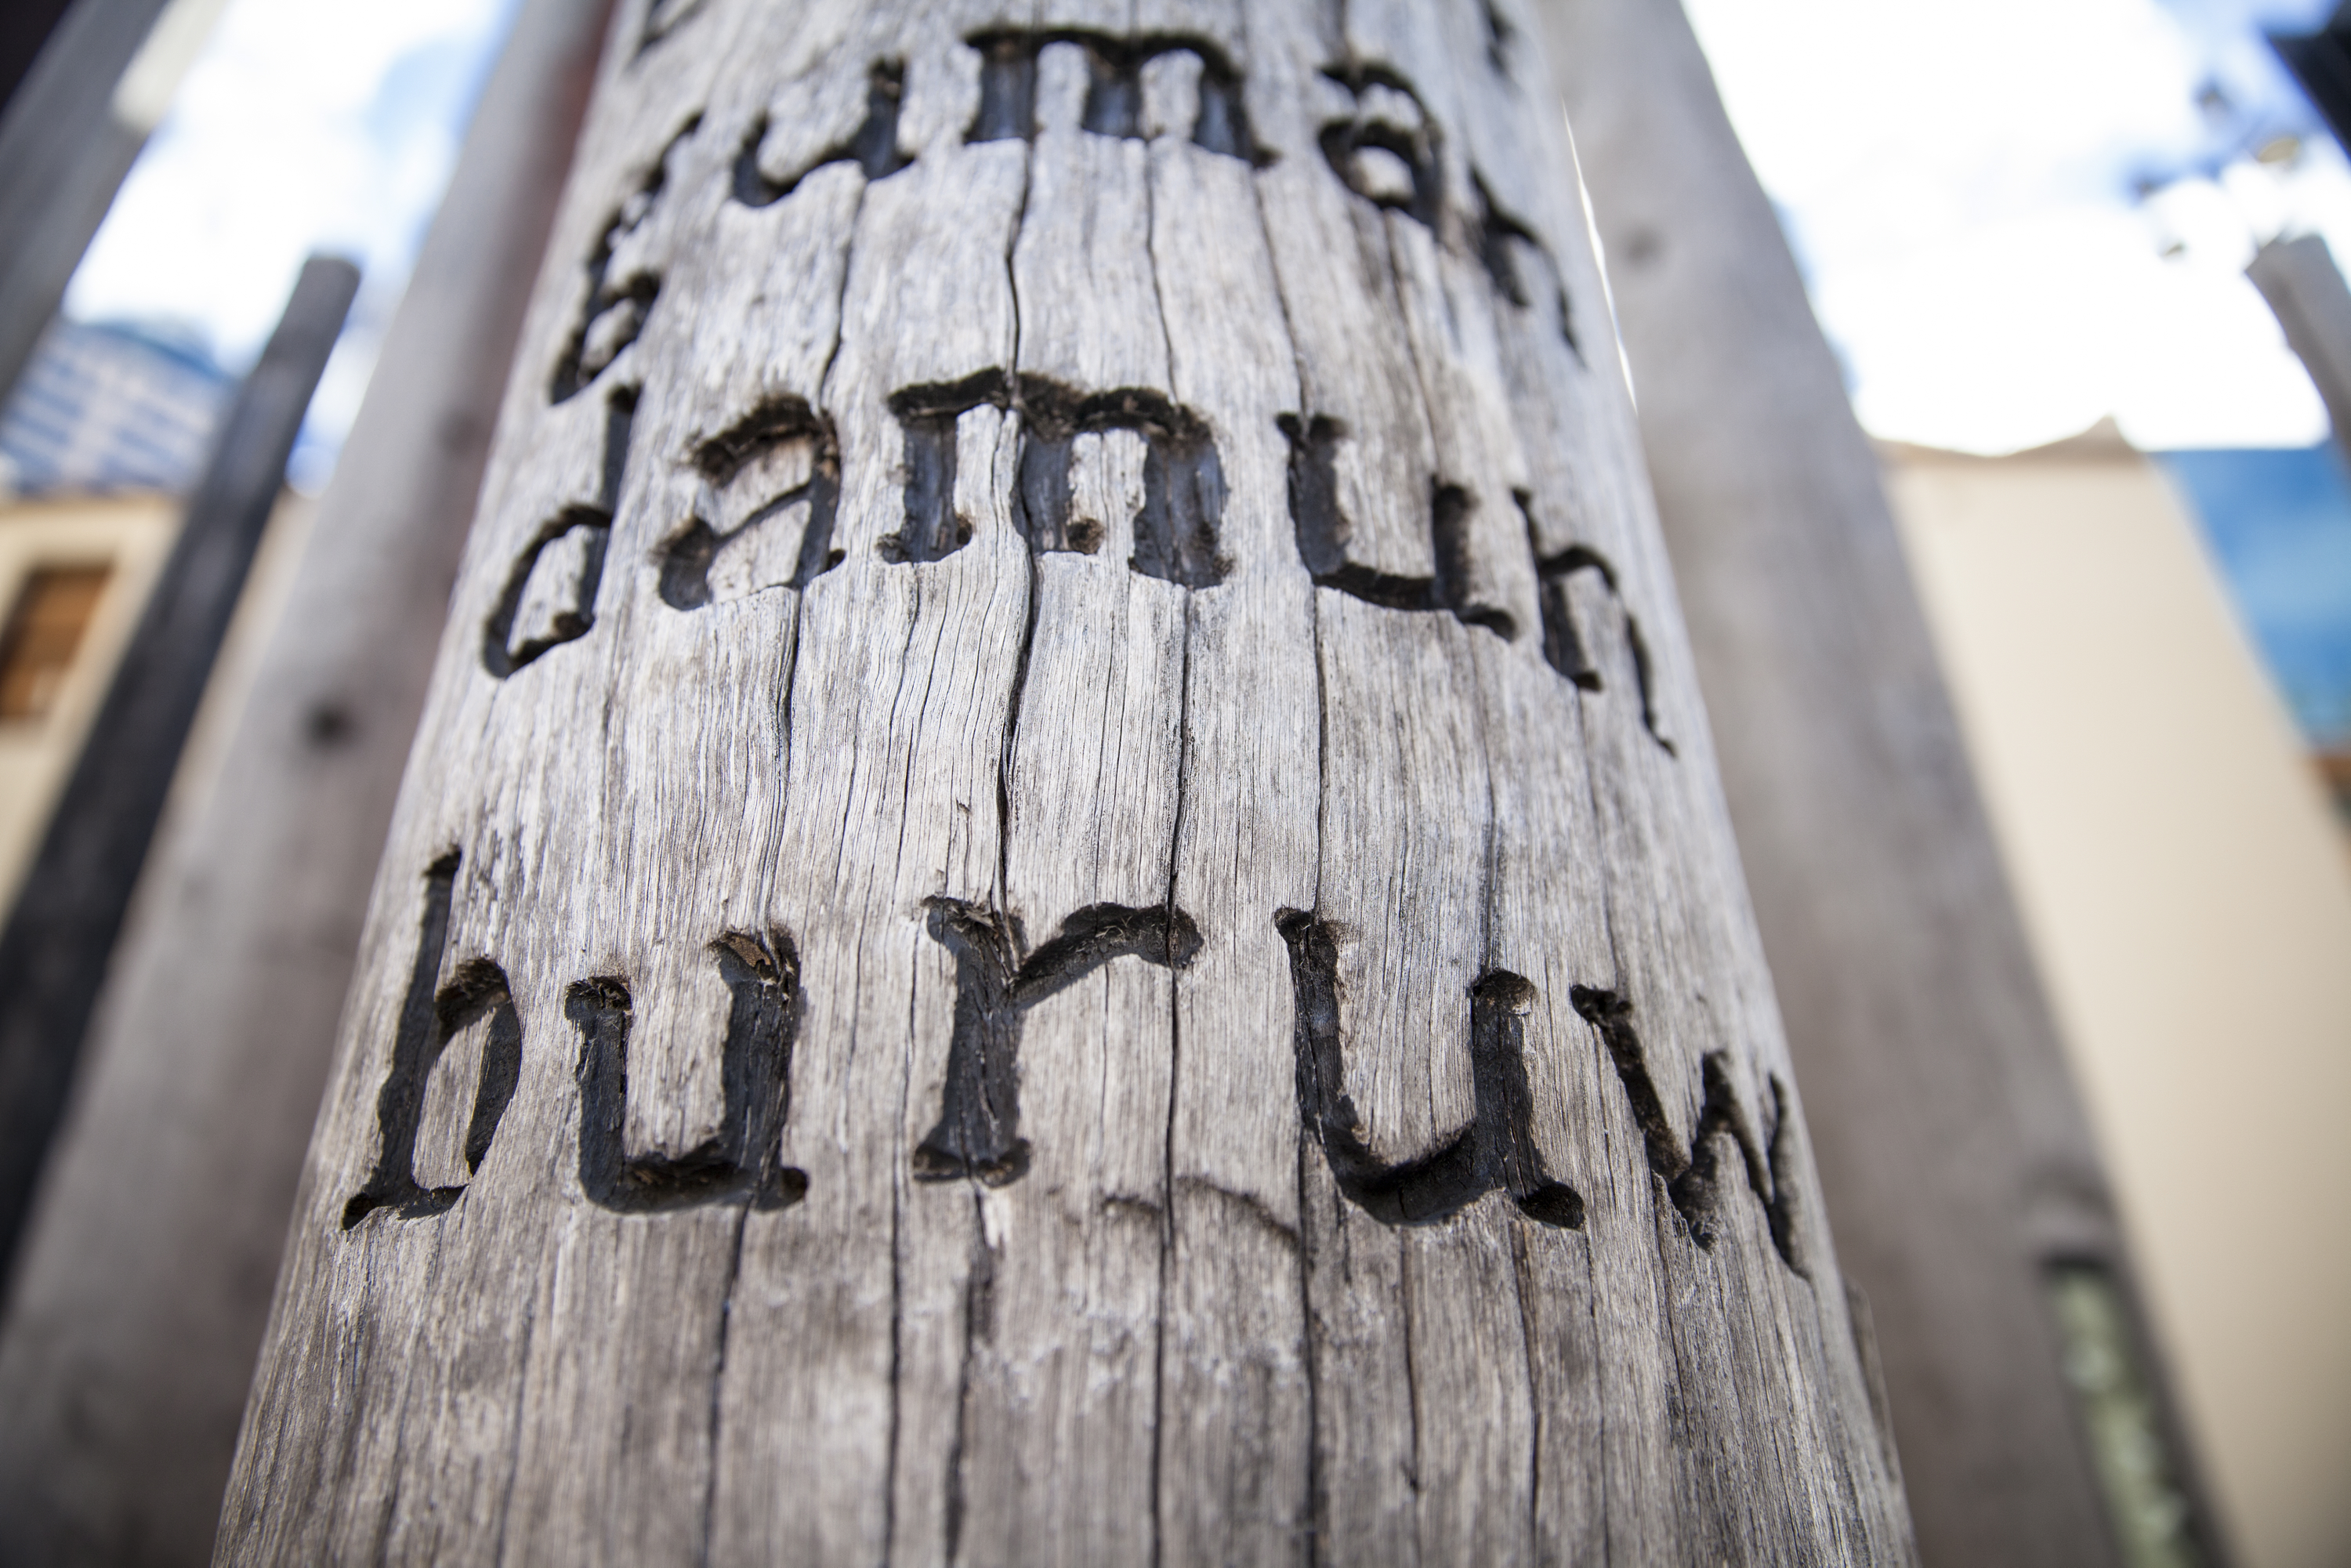 Gadigal words burnt in timber post for public artwork.